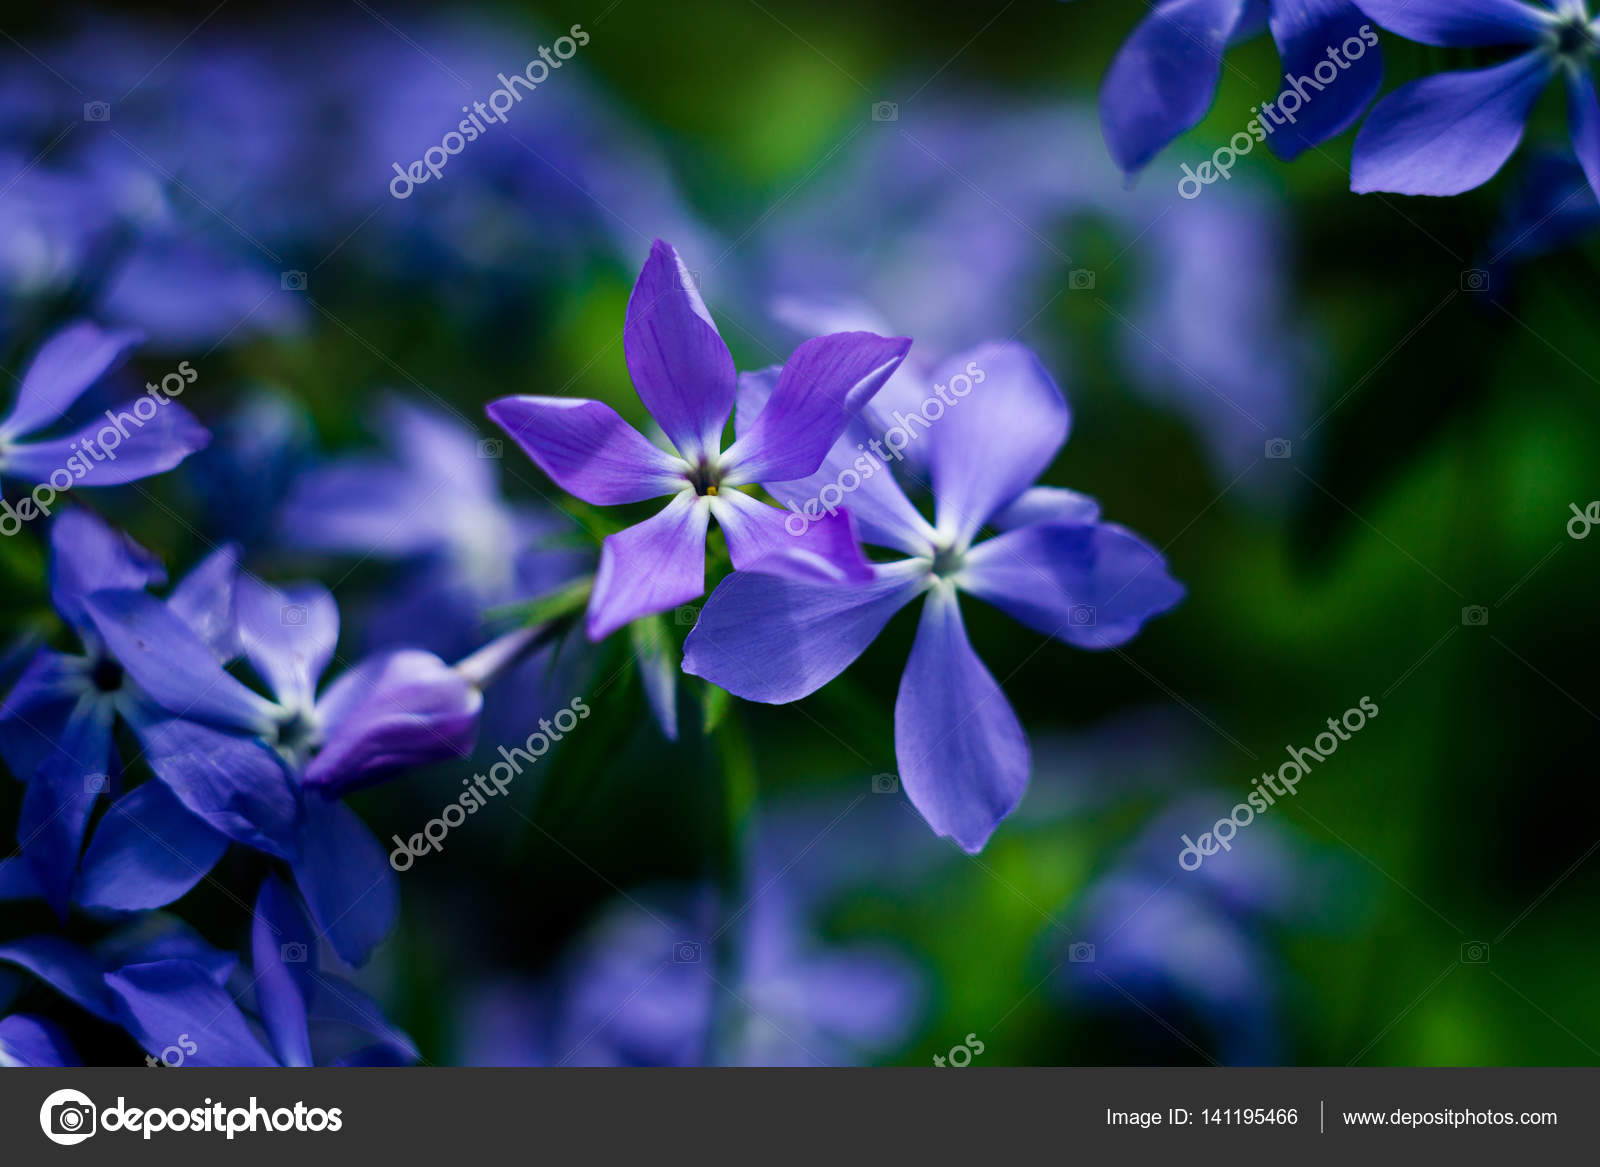 Beautiful Blue Flowers Close Upblue Lilac Flowers With Water Drops